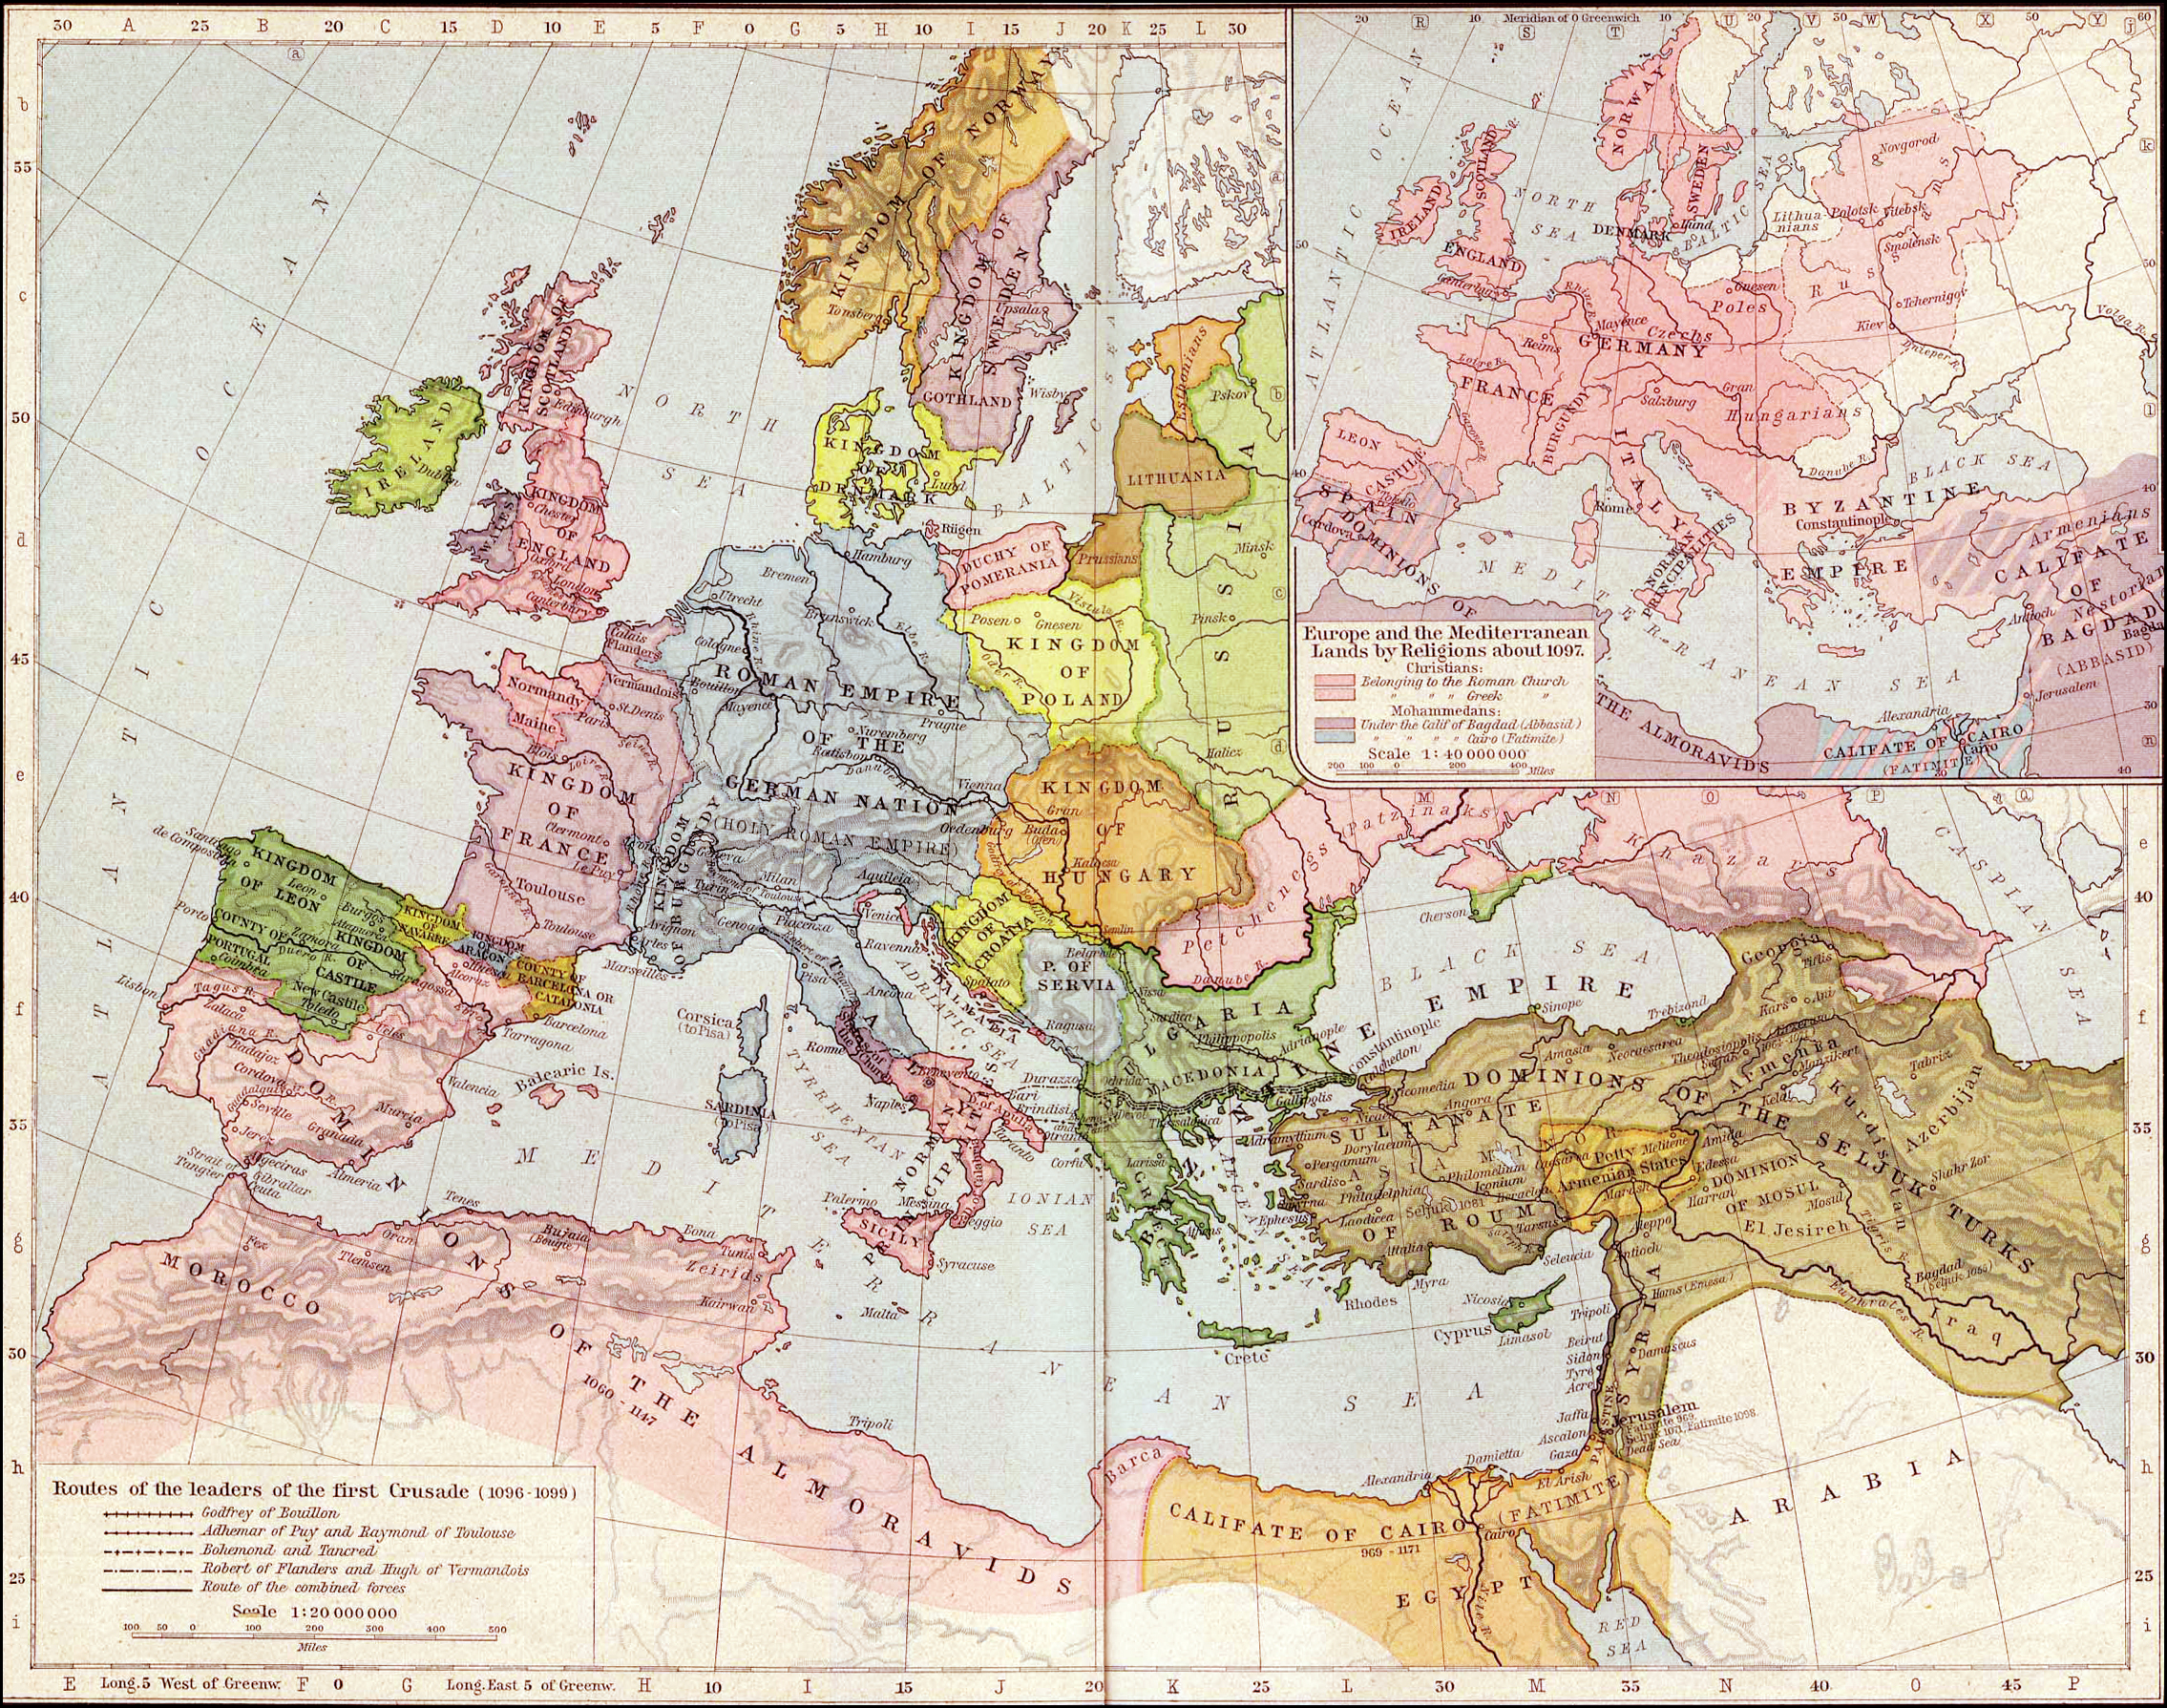 Europe and the Mediterranean lands about 1097